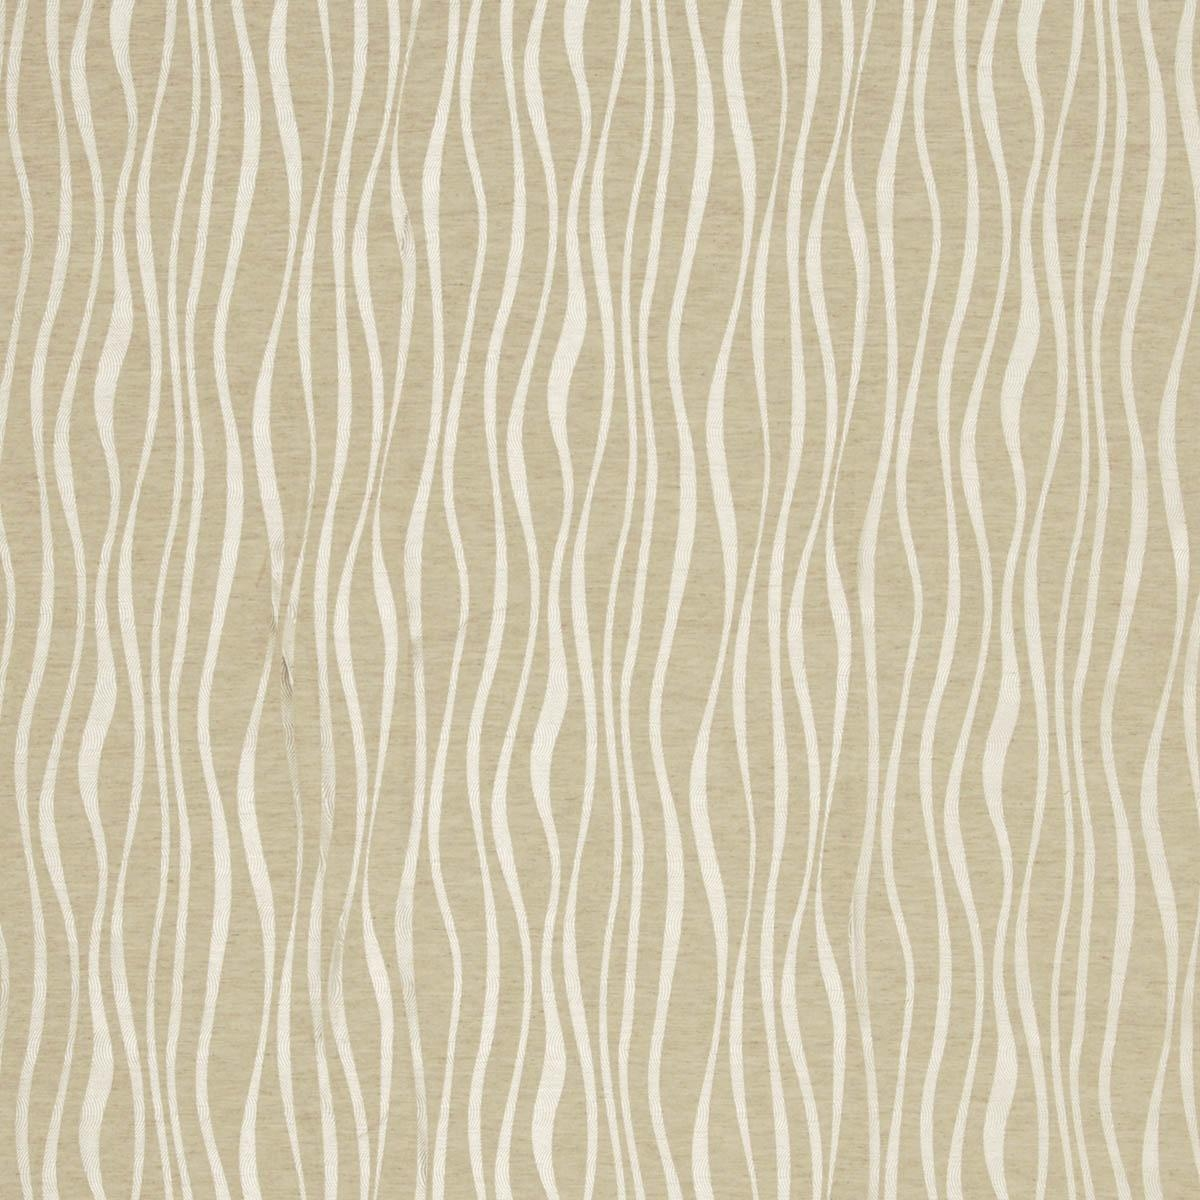 Chicanna Curtain Fabric Linen Free Uk Delivery Terrys Fabrics Regarding Curtain Linen Fabric (Image 1 of 15)